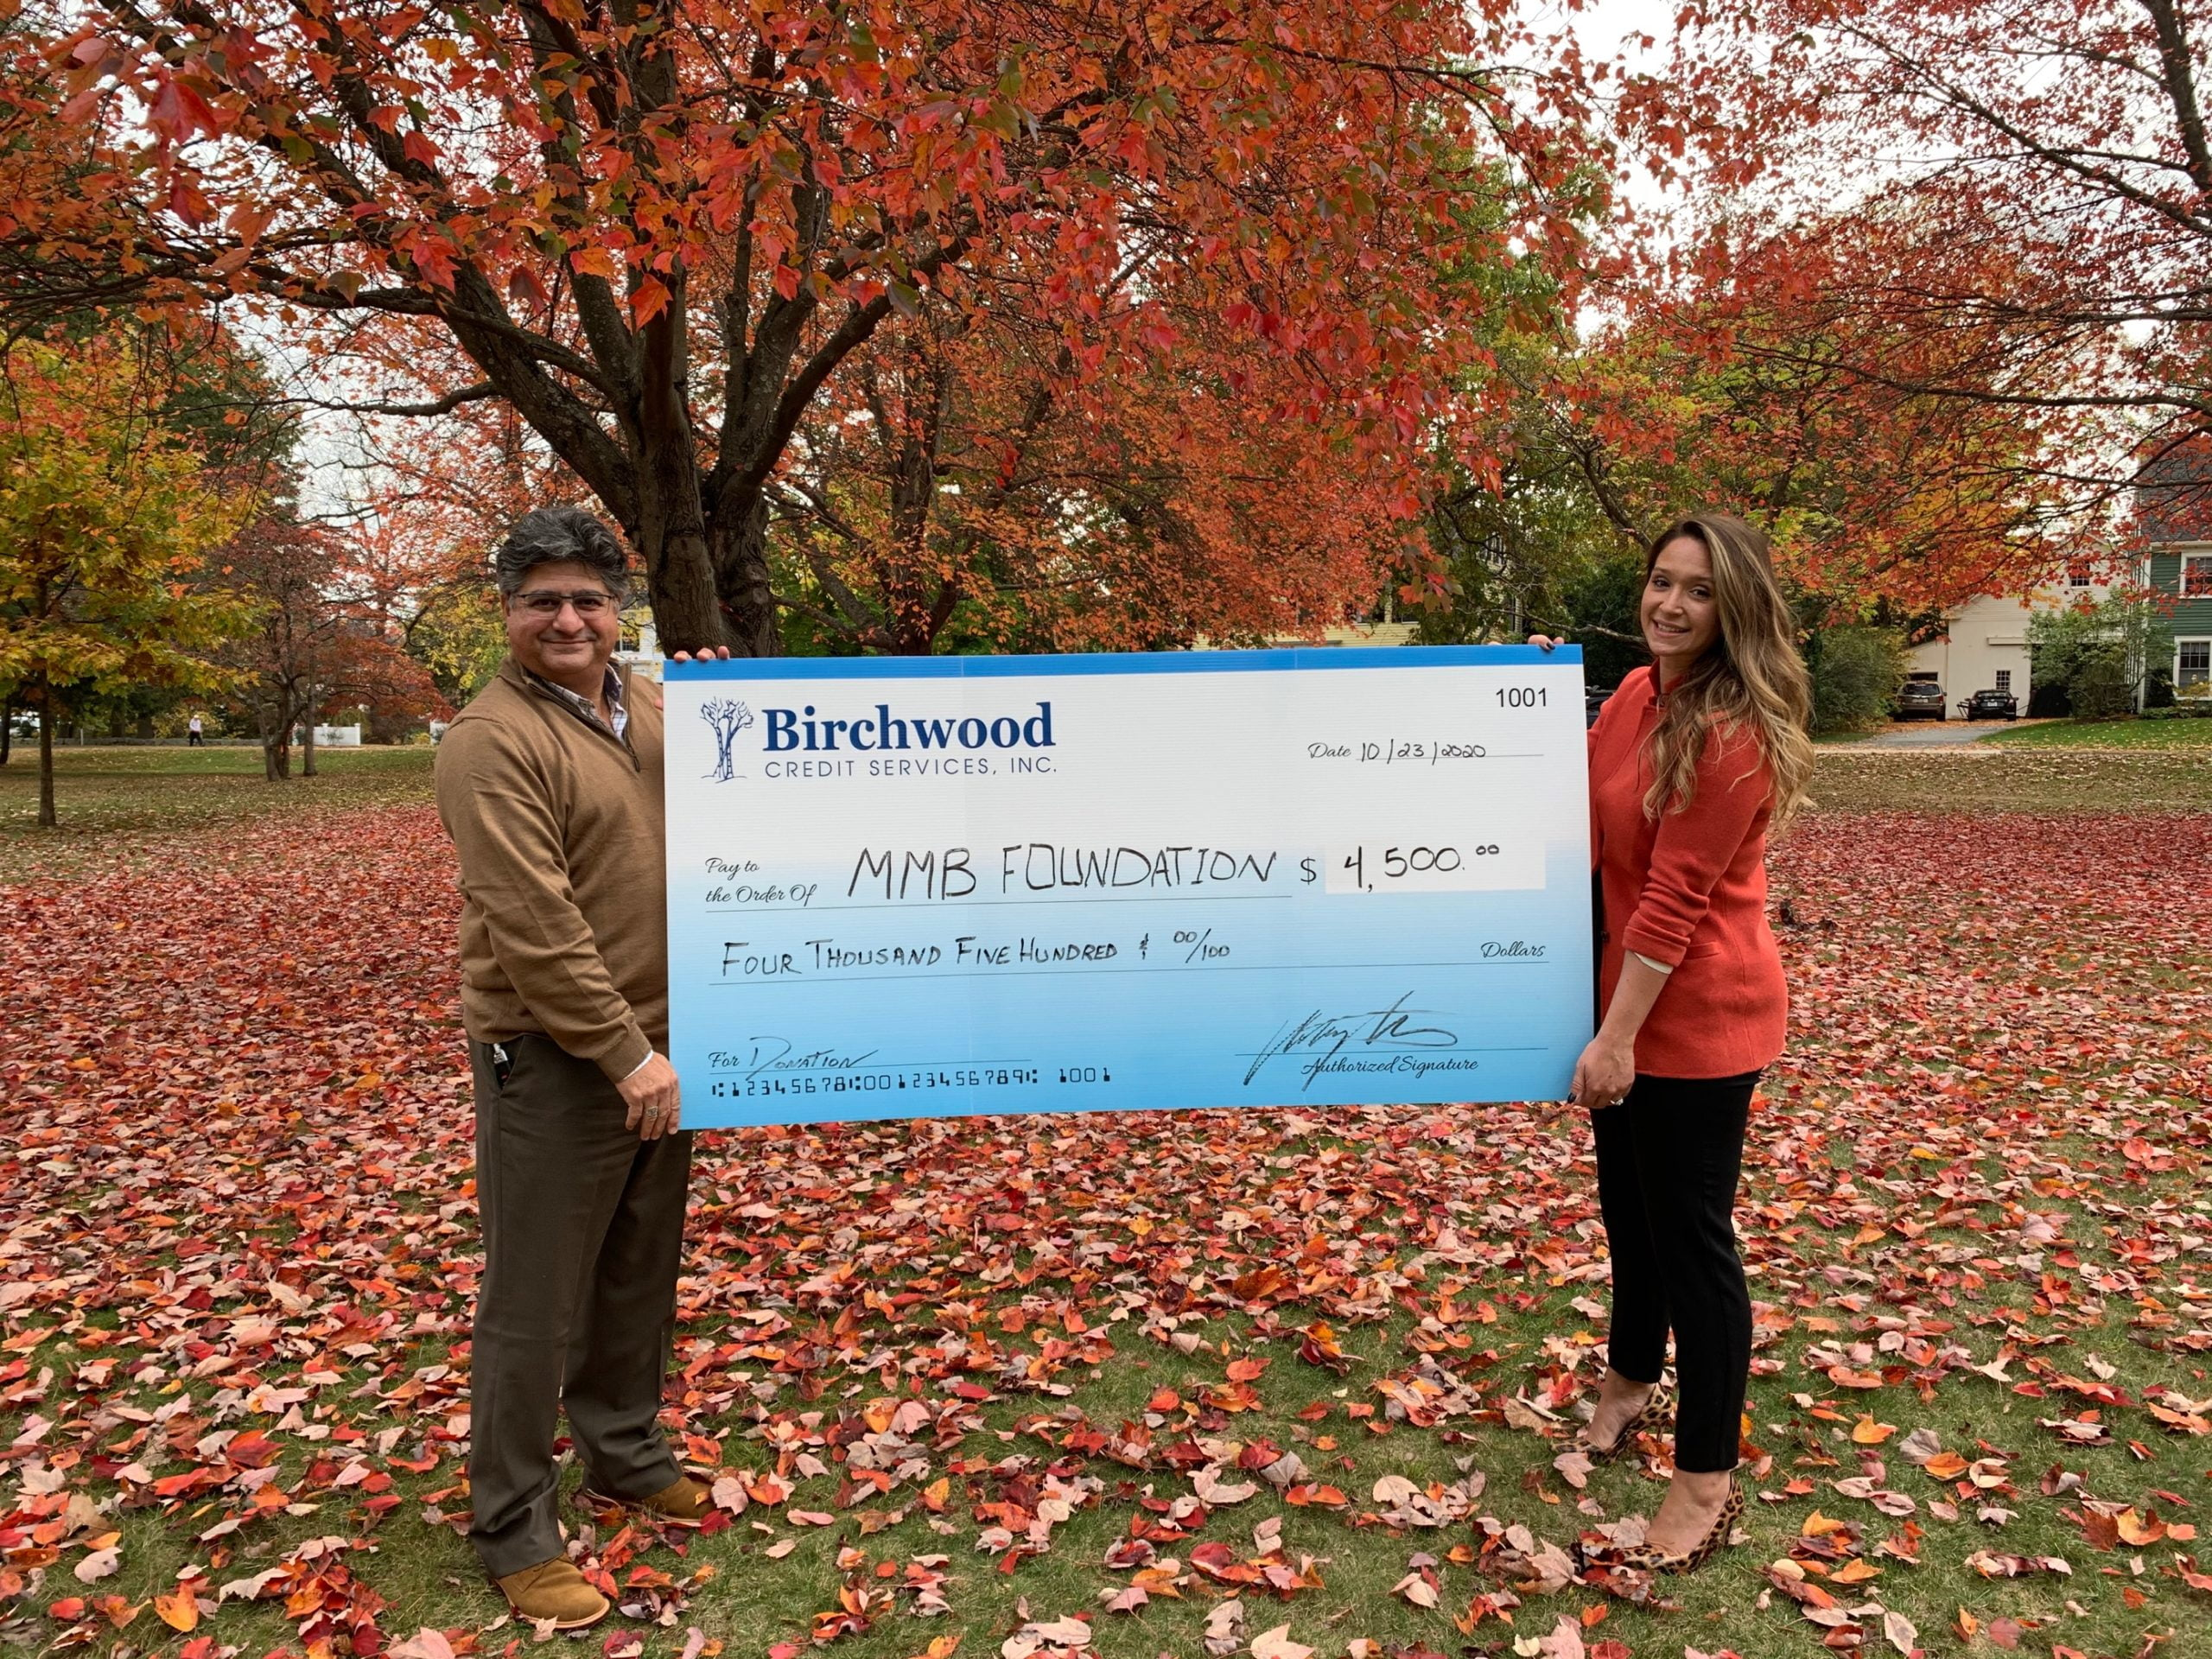 Birchwood Credit Services Inc. Donates $4,500 to the Massachusetts Mortgage Bankers Foundation